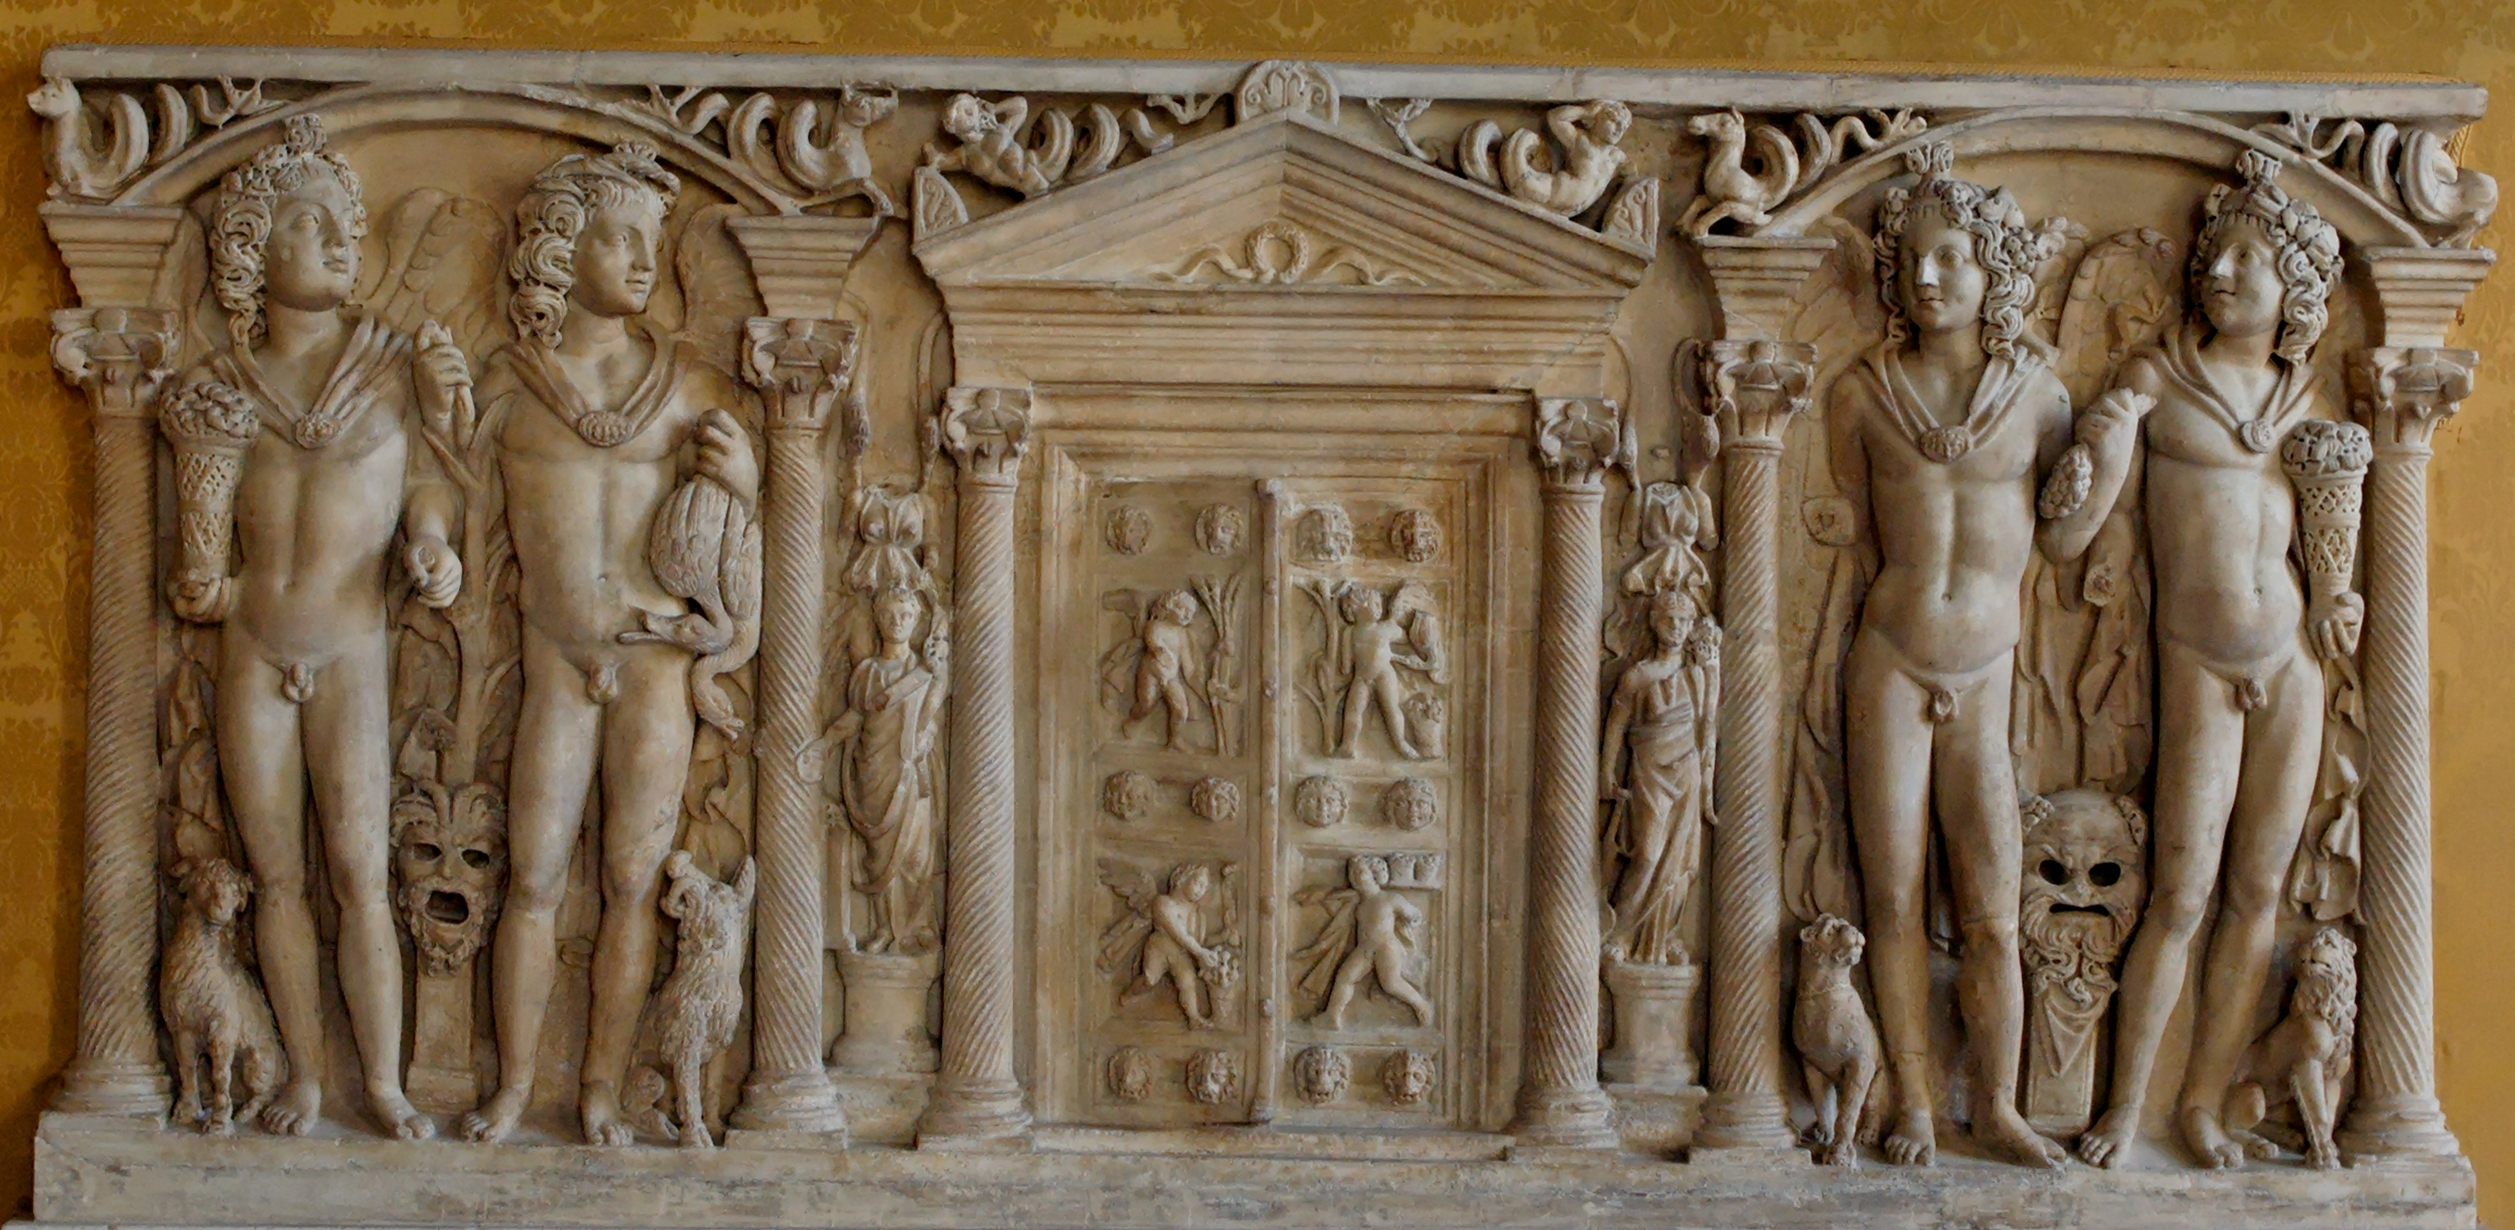 File:Sarcophagus four seasons Musei Capitolini MC1185.jpg - Wikimedia ... Michelangelo Battle Of Cascina